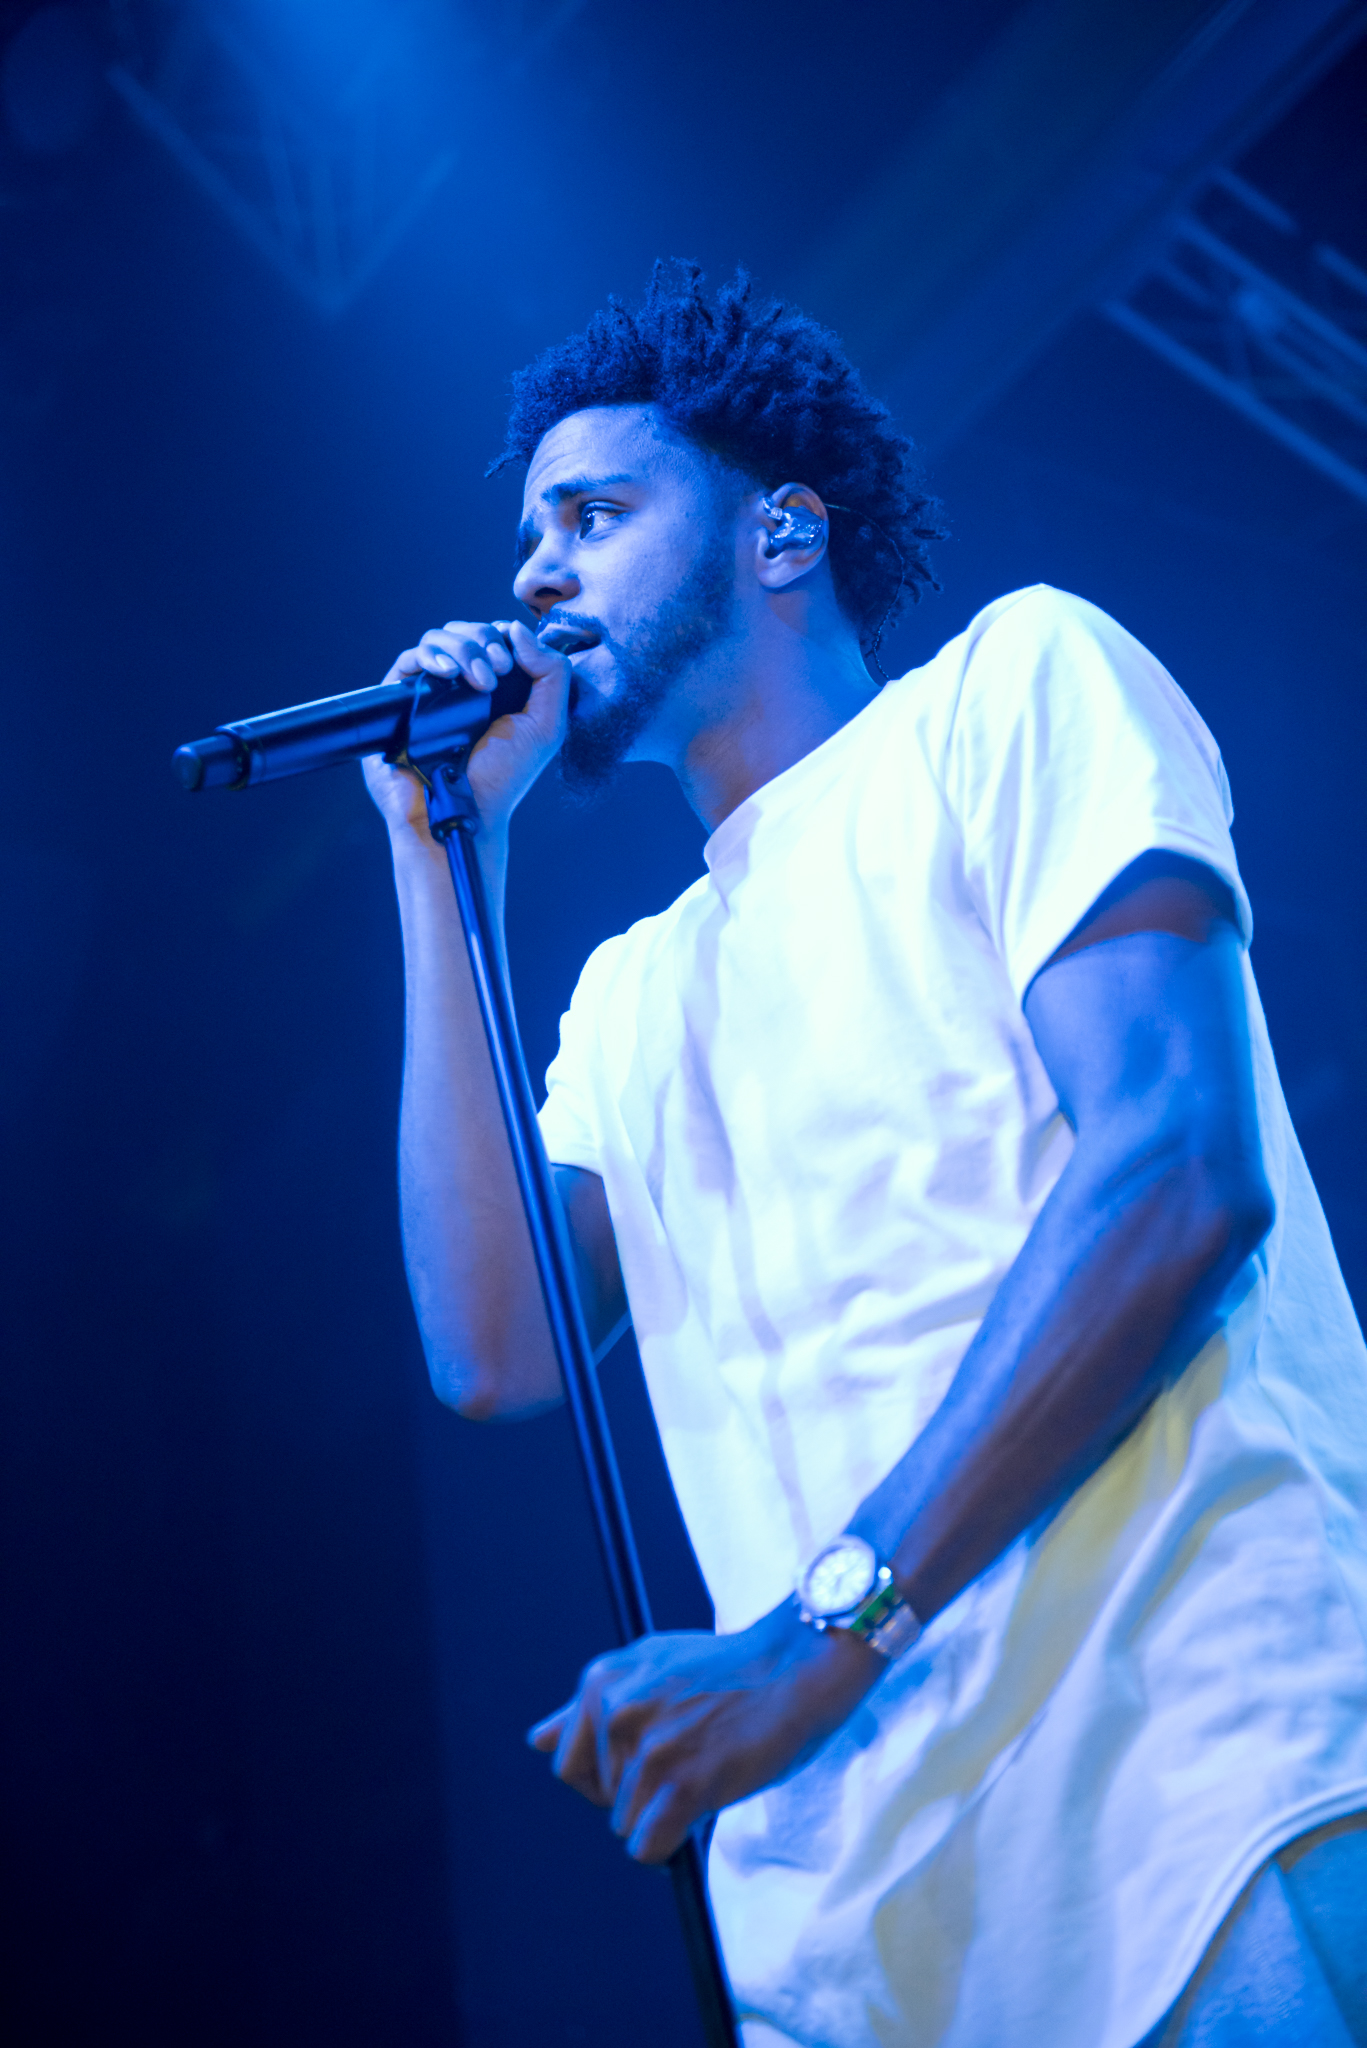 J Cole Wallpapers High Quality